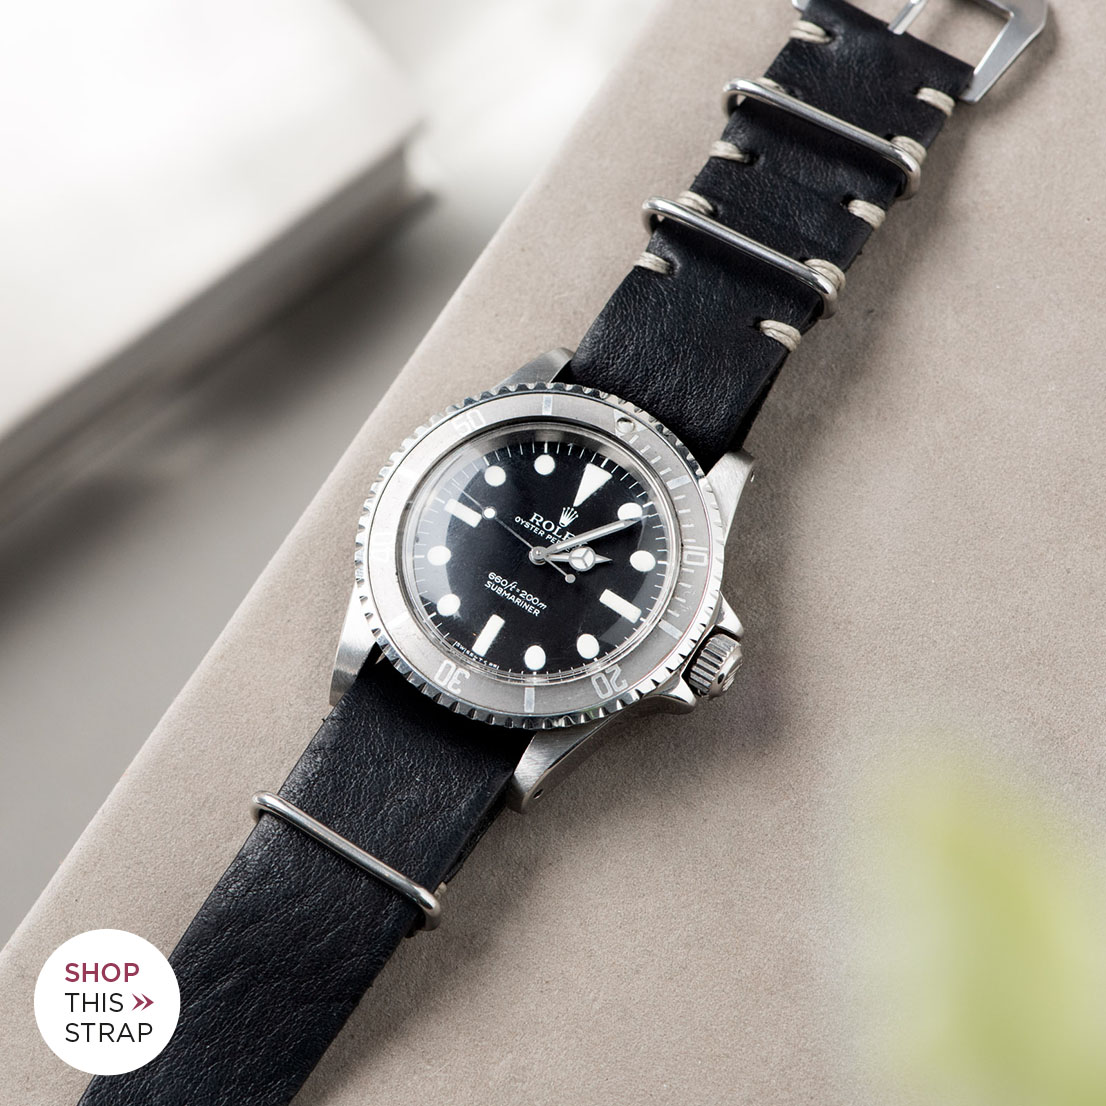 Bulang and Sons_Strap Guide_Rolex Submariner 5513 Faded_BLACK NATO LEATHER WATCH STRAP